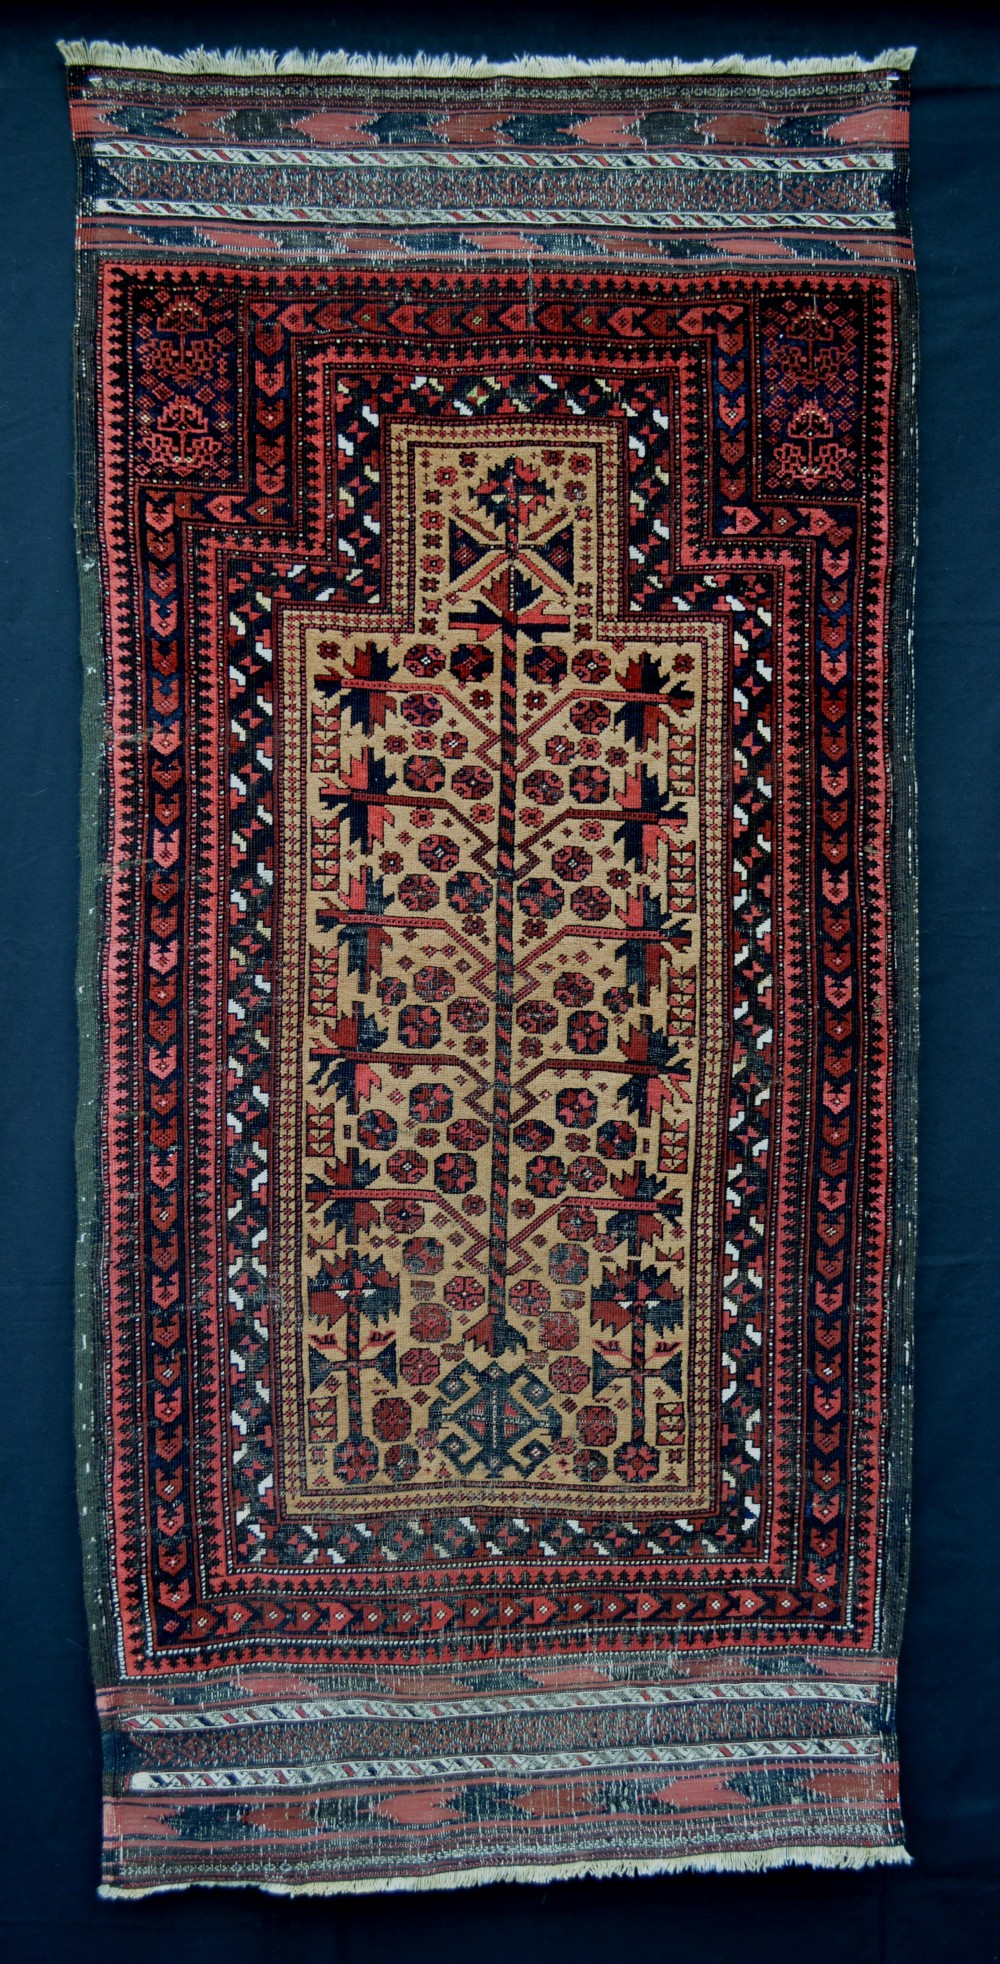 antique prayerrug timuri yaqoub khani tribe borderlands of eastern persiawestern afghanistan